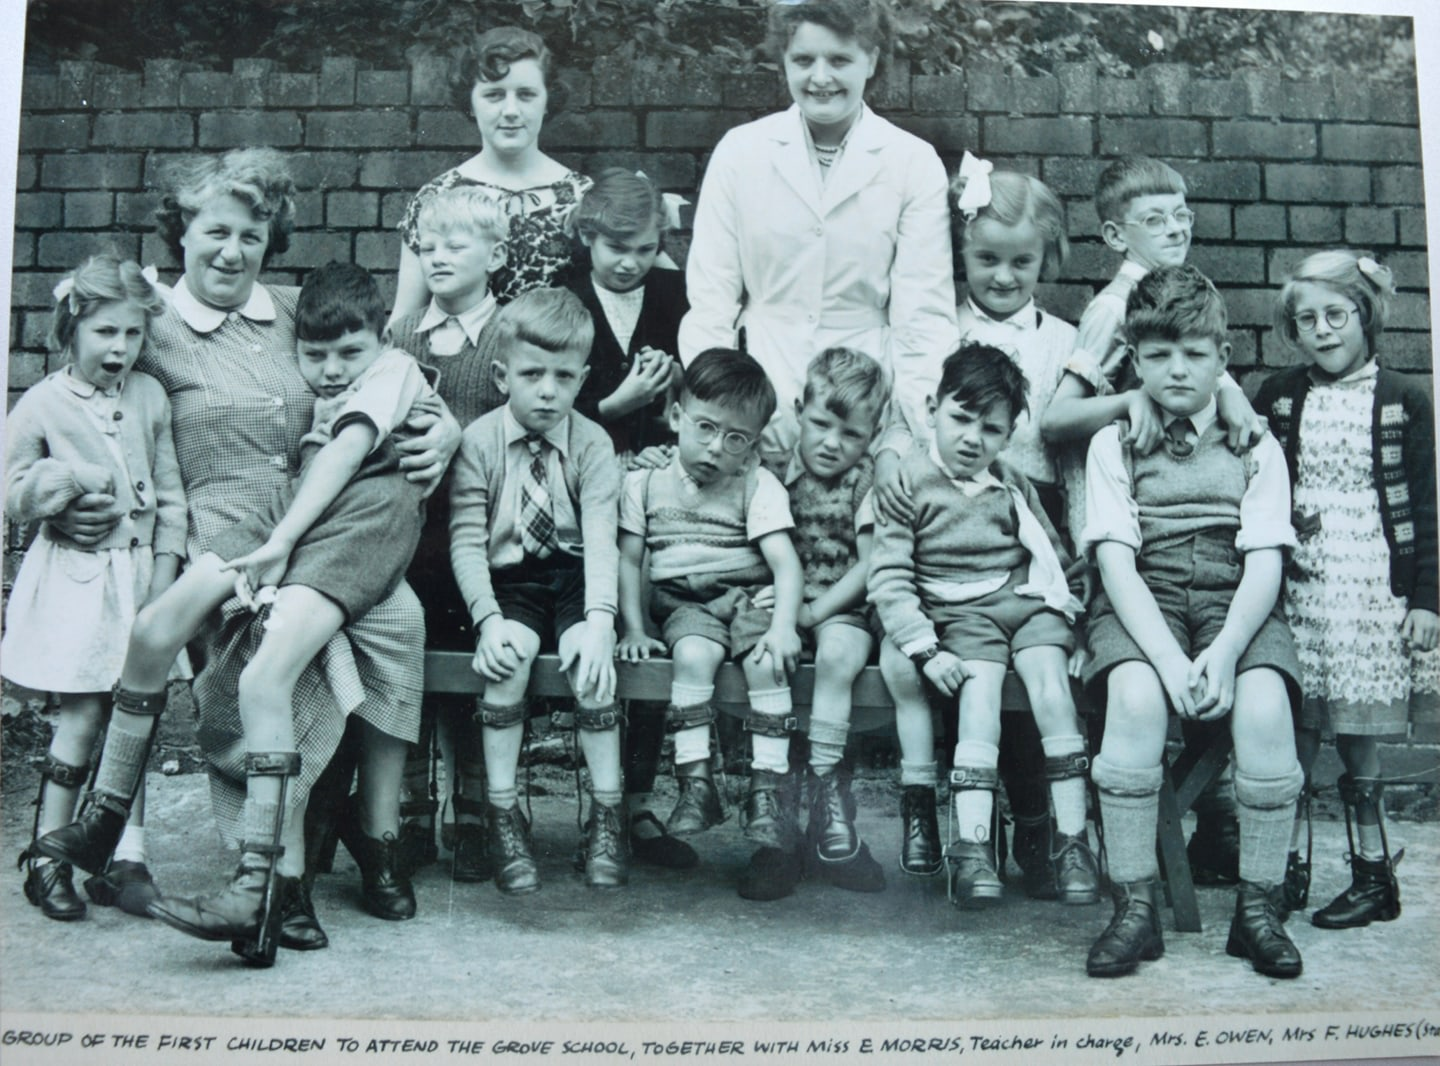 The first group of children to attend what became Longfields, from the project's Facebook page ( https://www.facebook.com/Longfields1952/ )